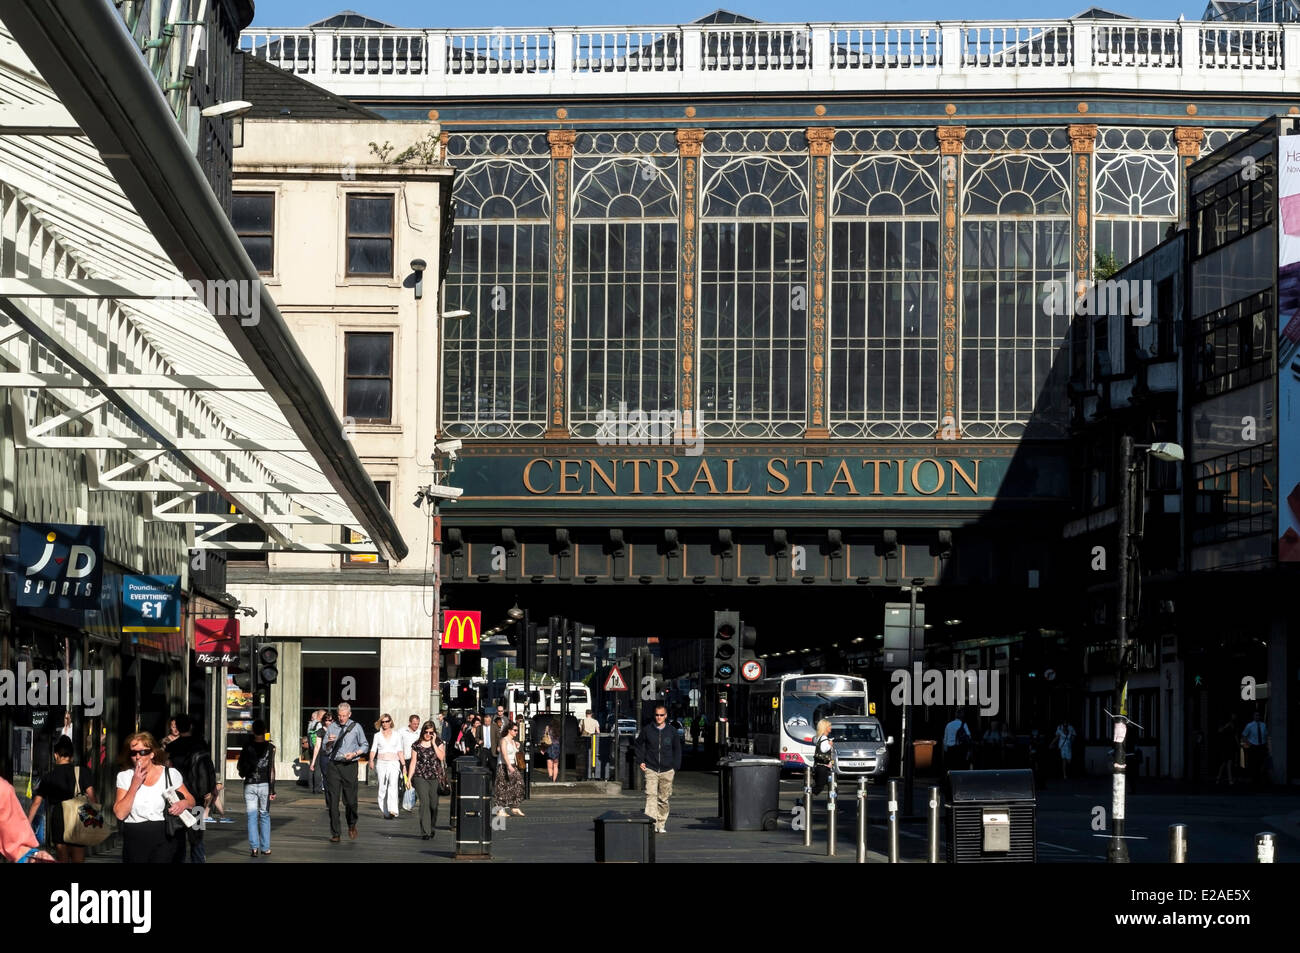 United Kingdom, Scotland, Glasgow, Central Station - Stock Image